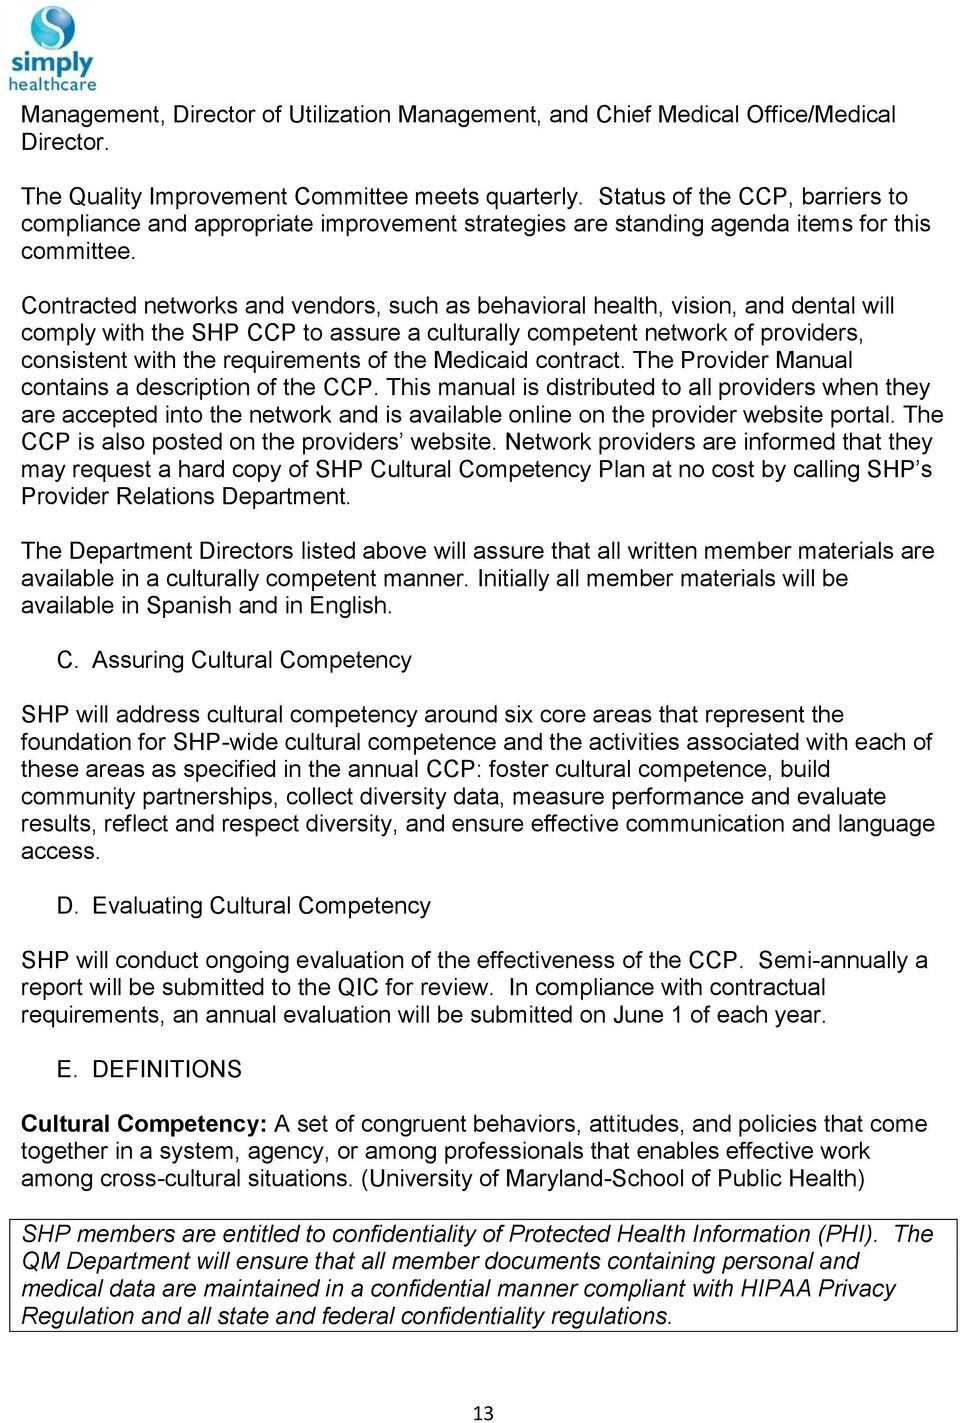 Contracted networks and vendors, such as behavioral health, vision, and dental will comply with the SHP CCP to assure a culturally competent network of providers, consistent with the requirements of